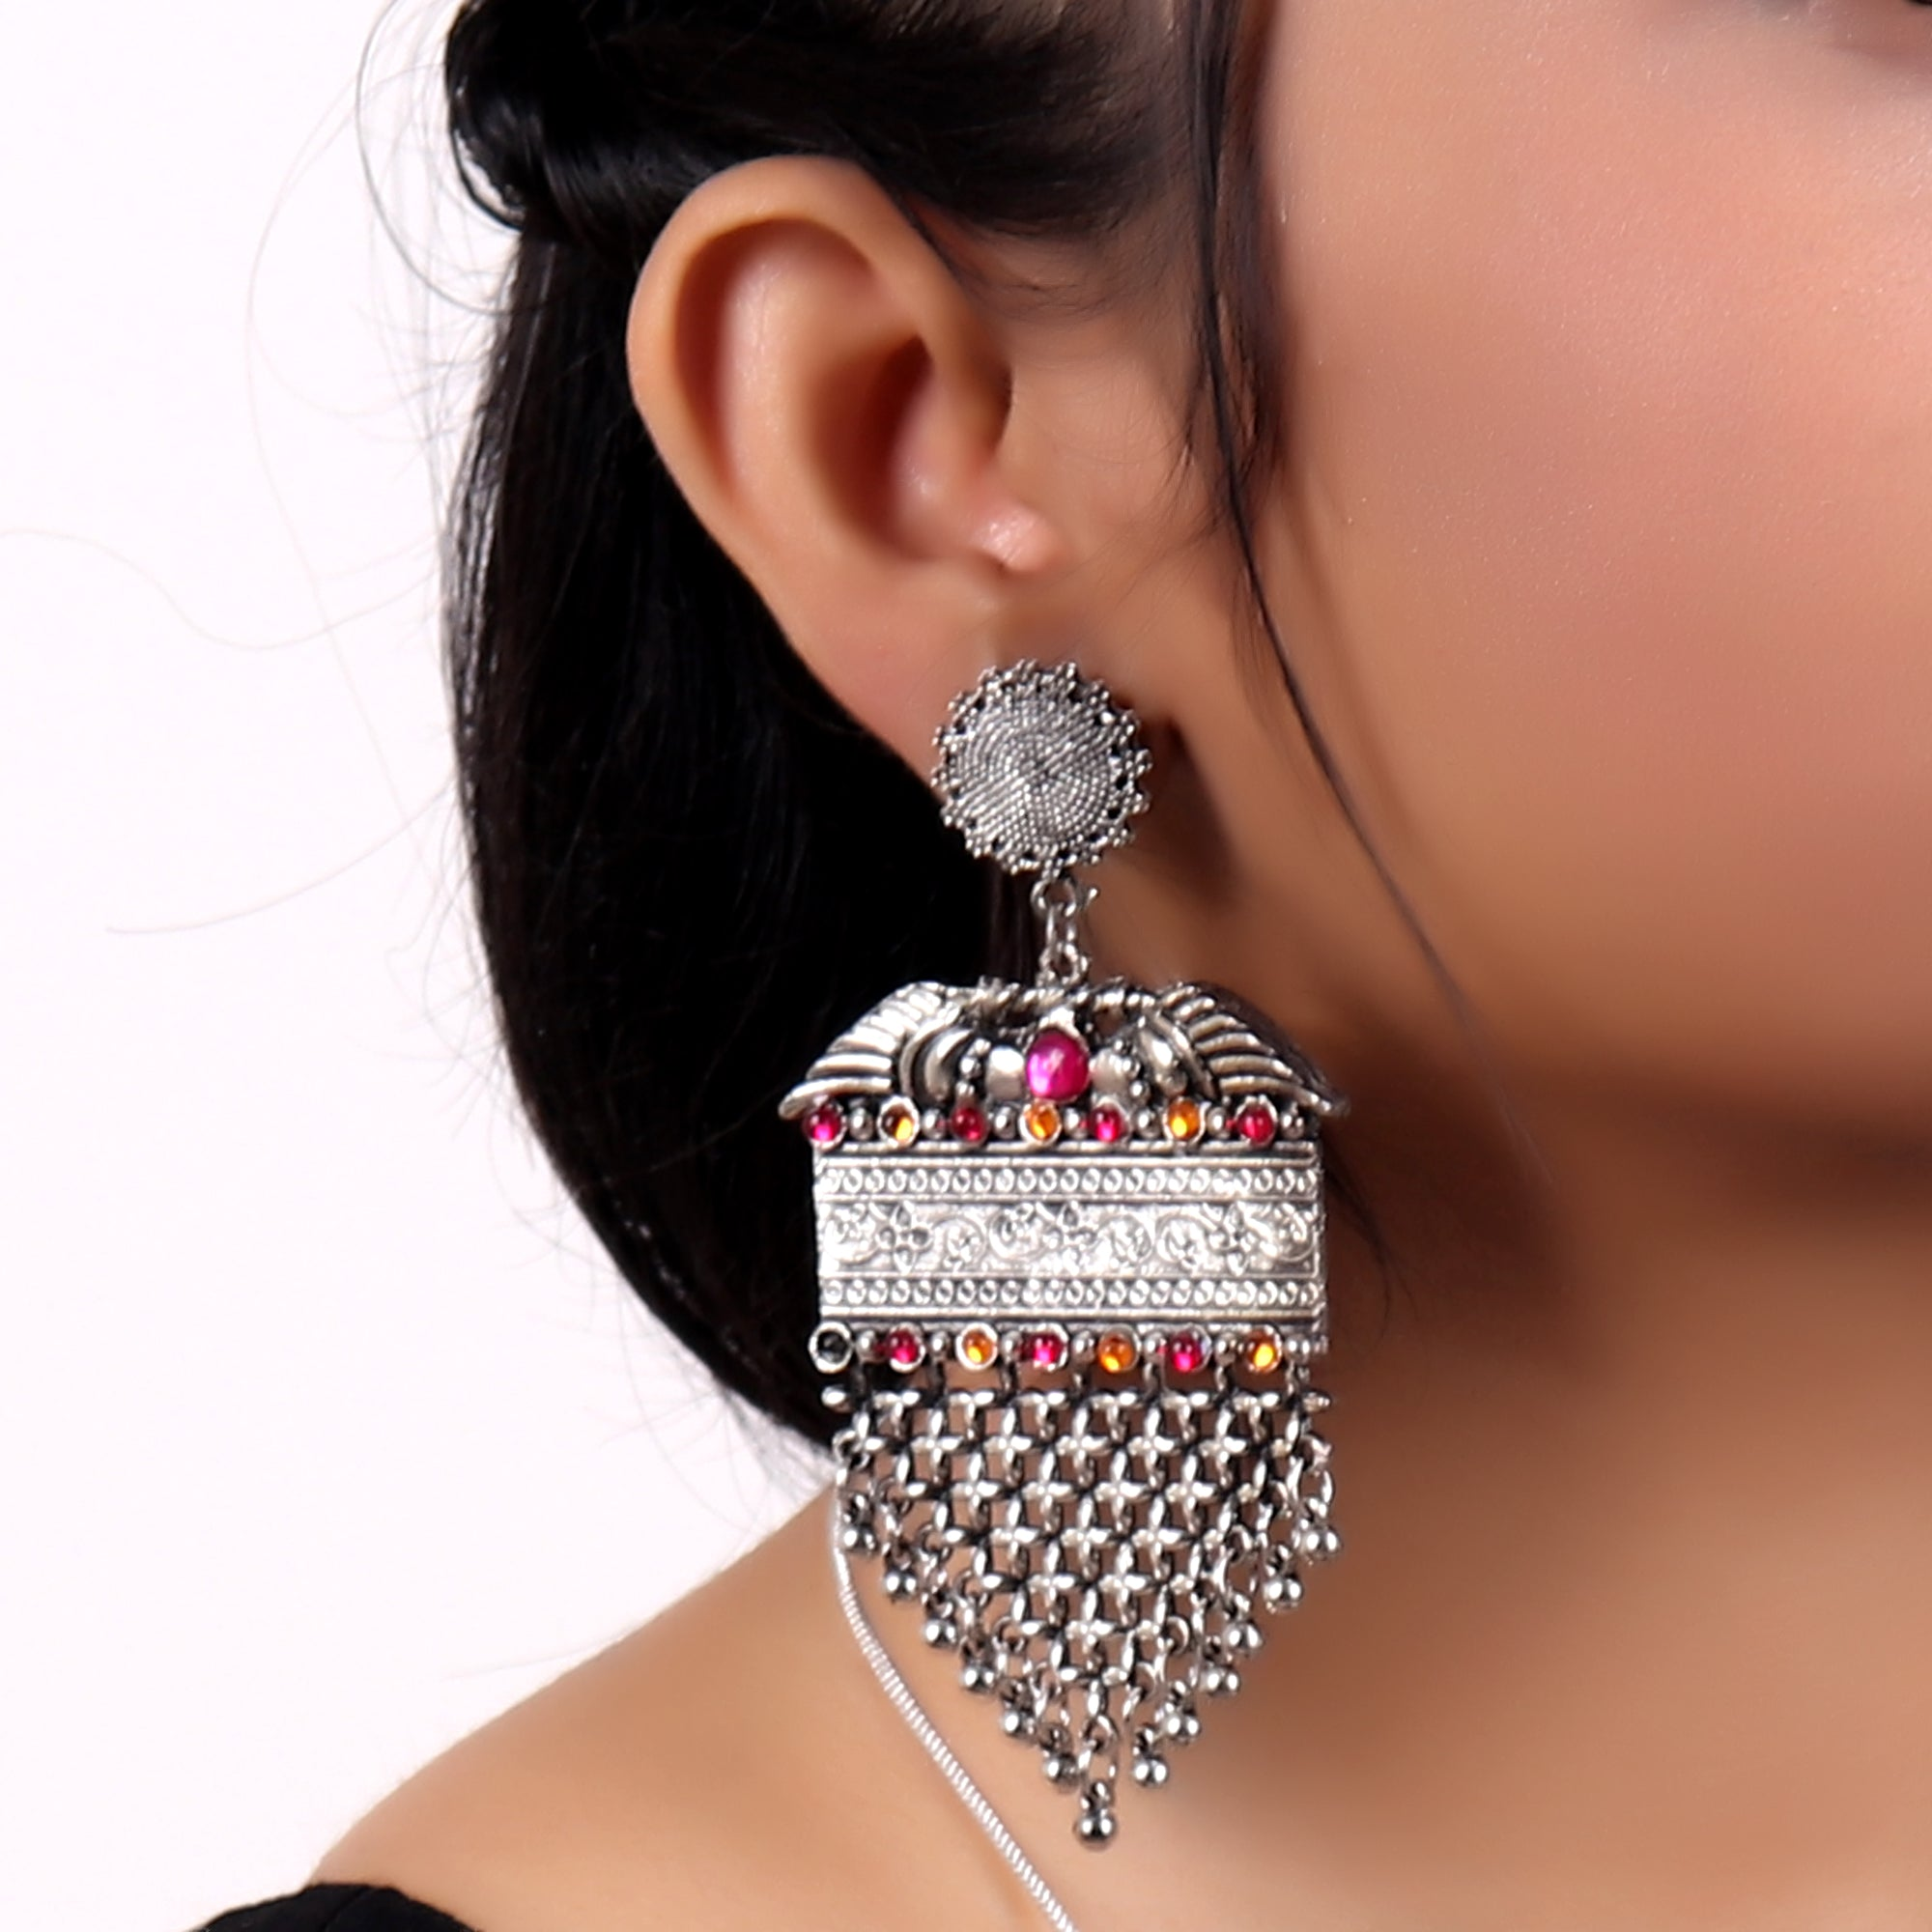 Earrings,Alluring Vintage Look earrings with Pink and Orange - Cippele Multi Store